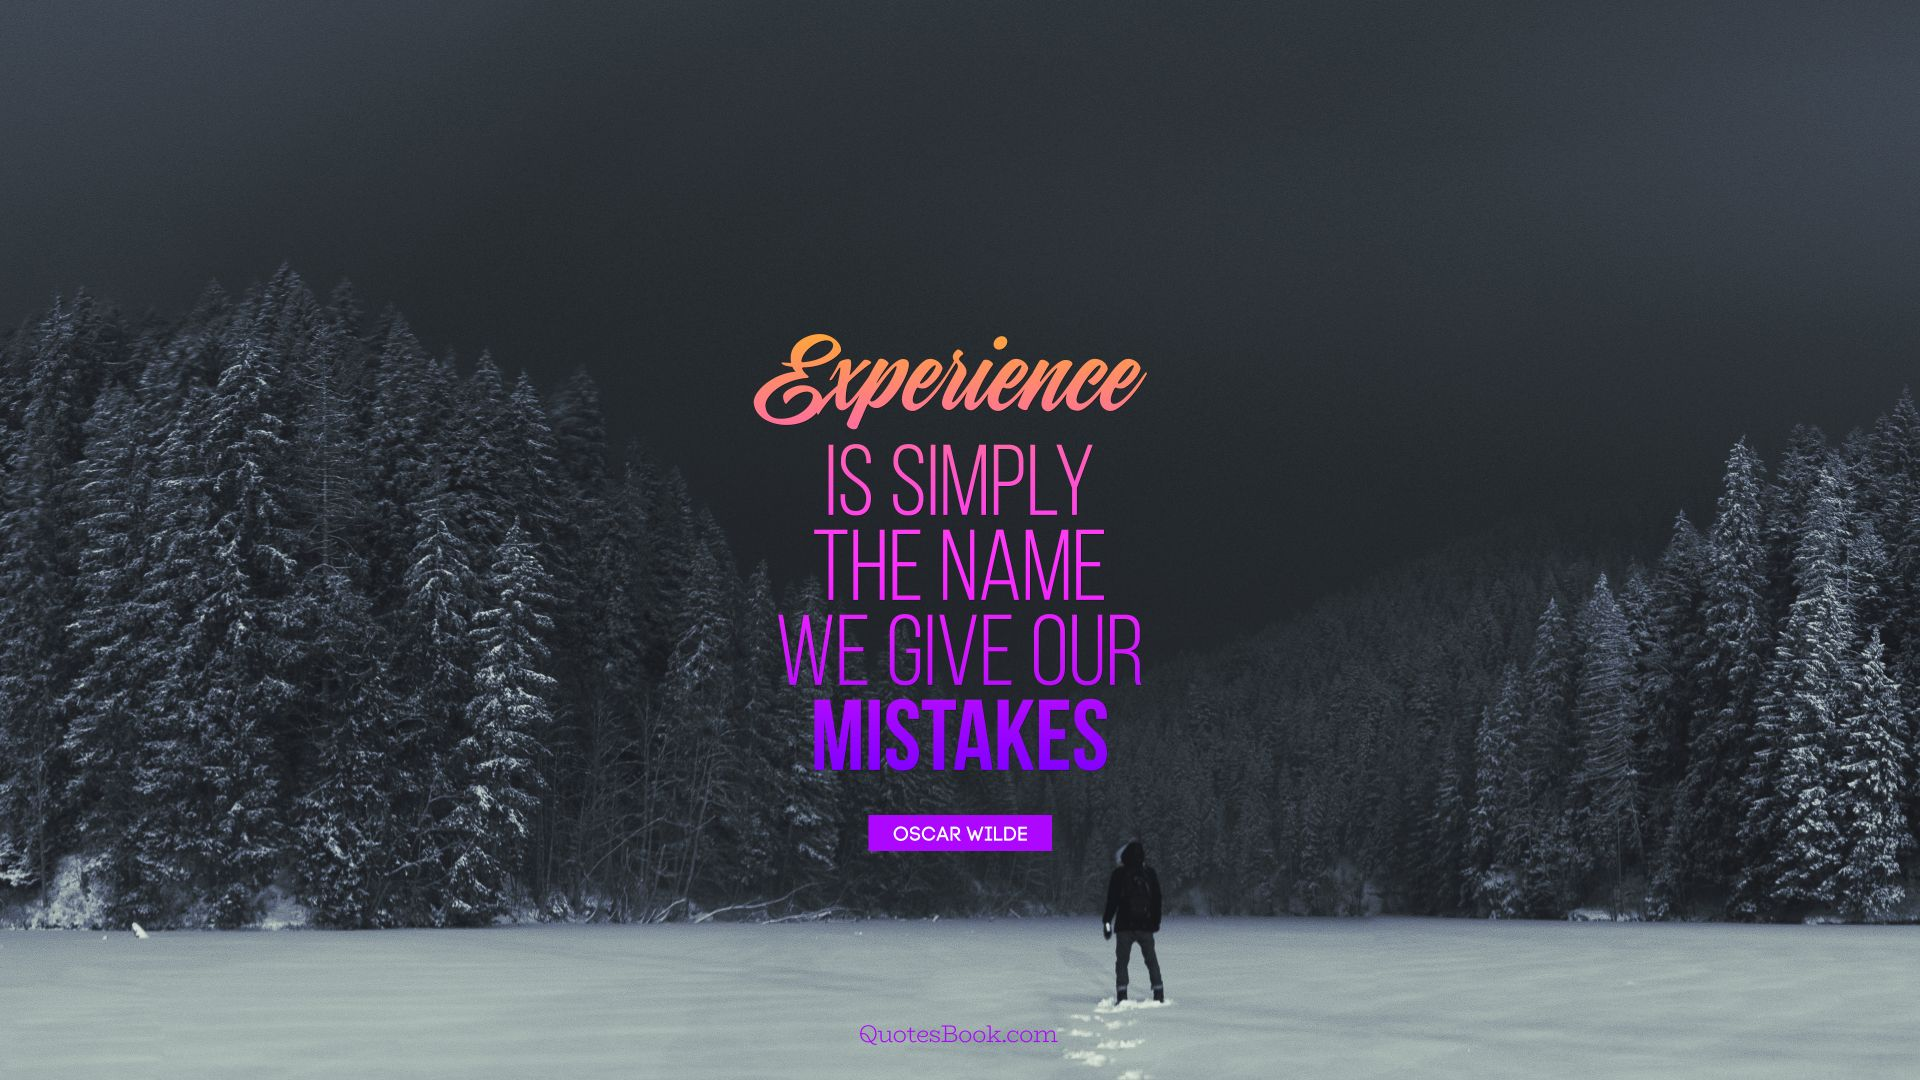 Experience is simply the name we give our mistakes. - Quote by Oscar Wilde